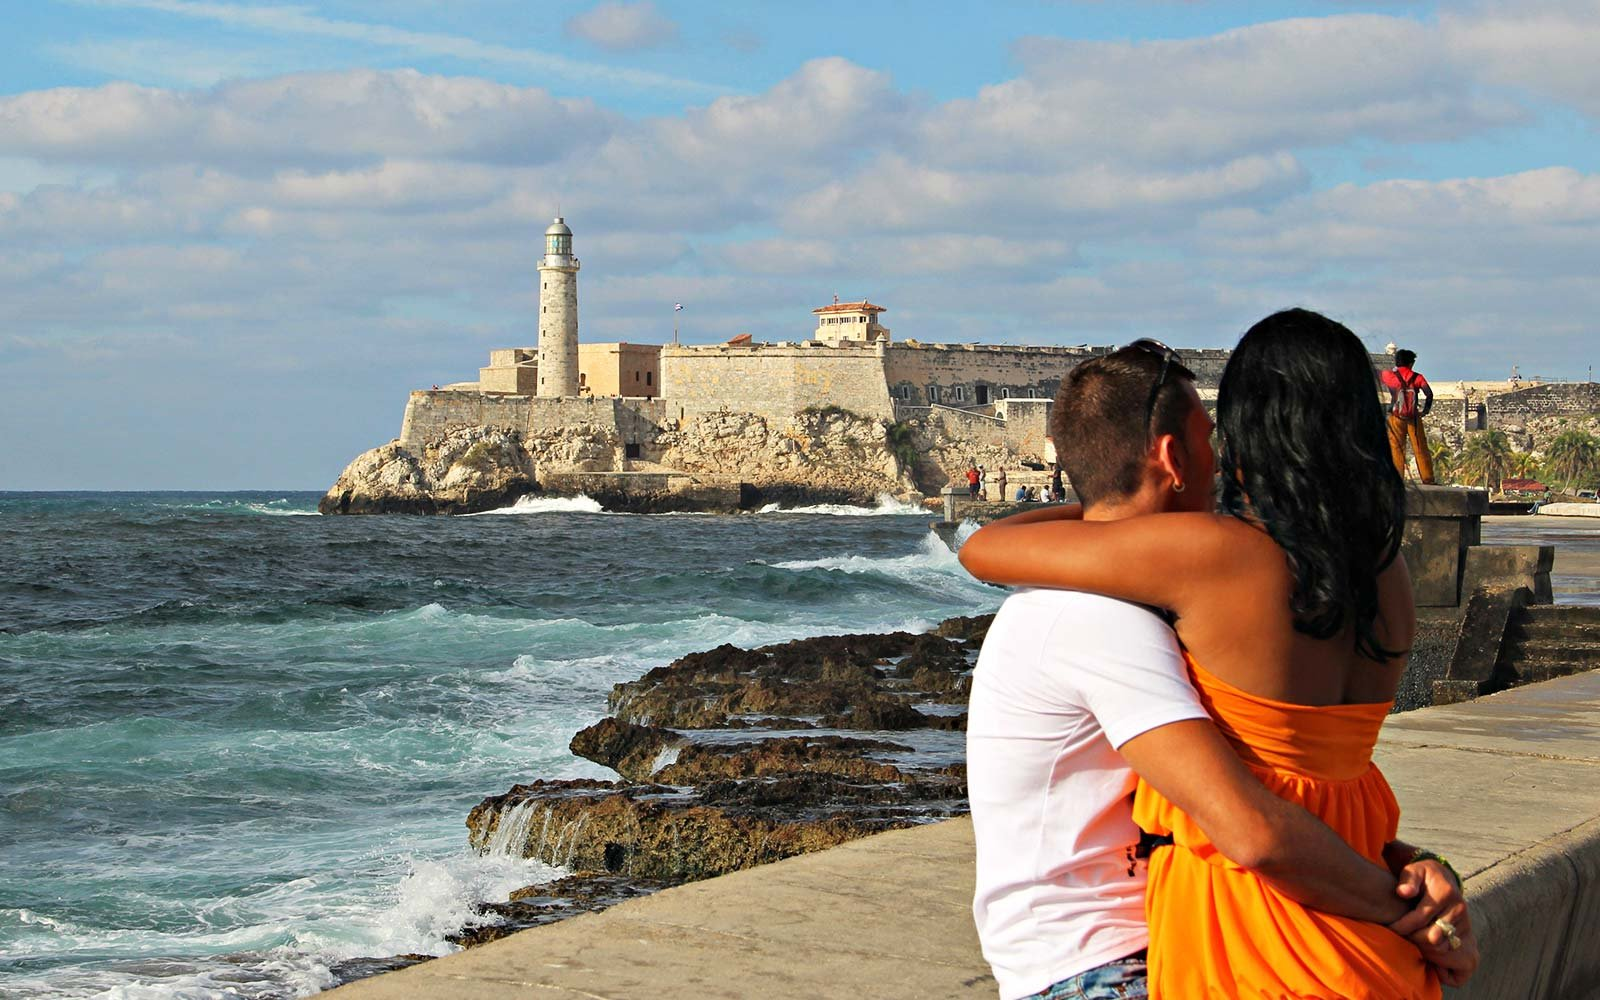 Cuba Was a Top International Destination for Valentine's Day This Year | Travel + Leisure